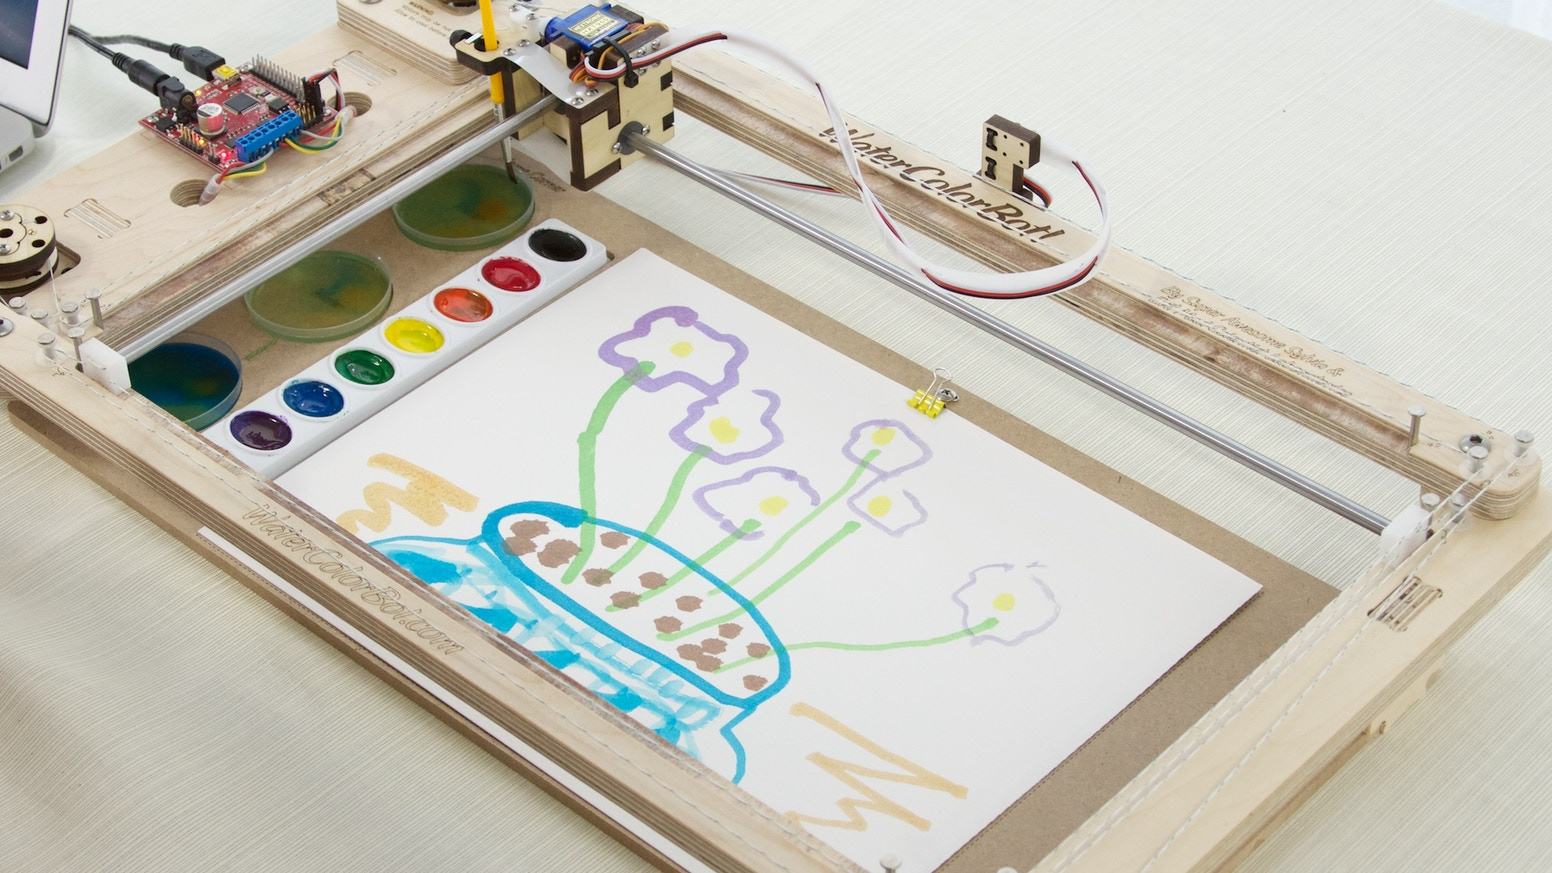 The Friendly and Educational Art Robot that Paints with Watercolors!